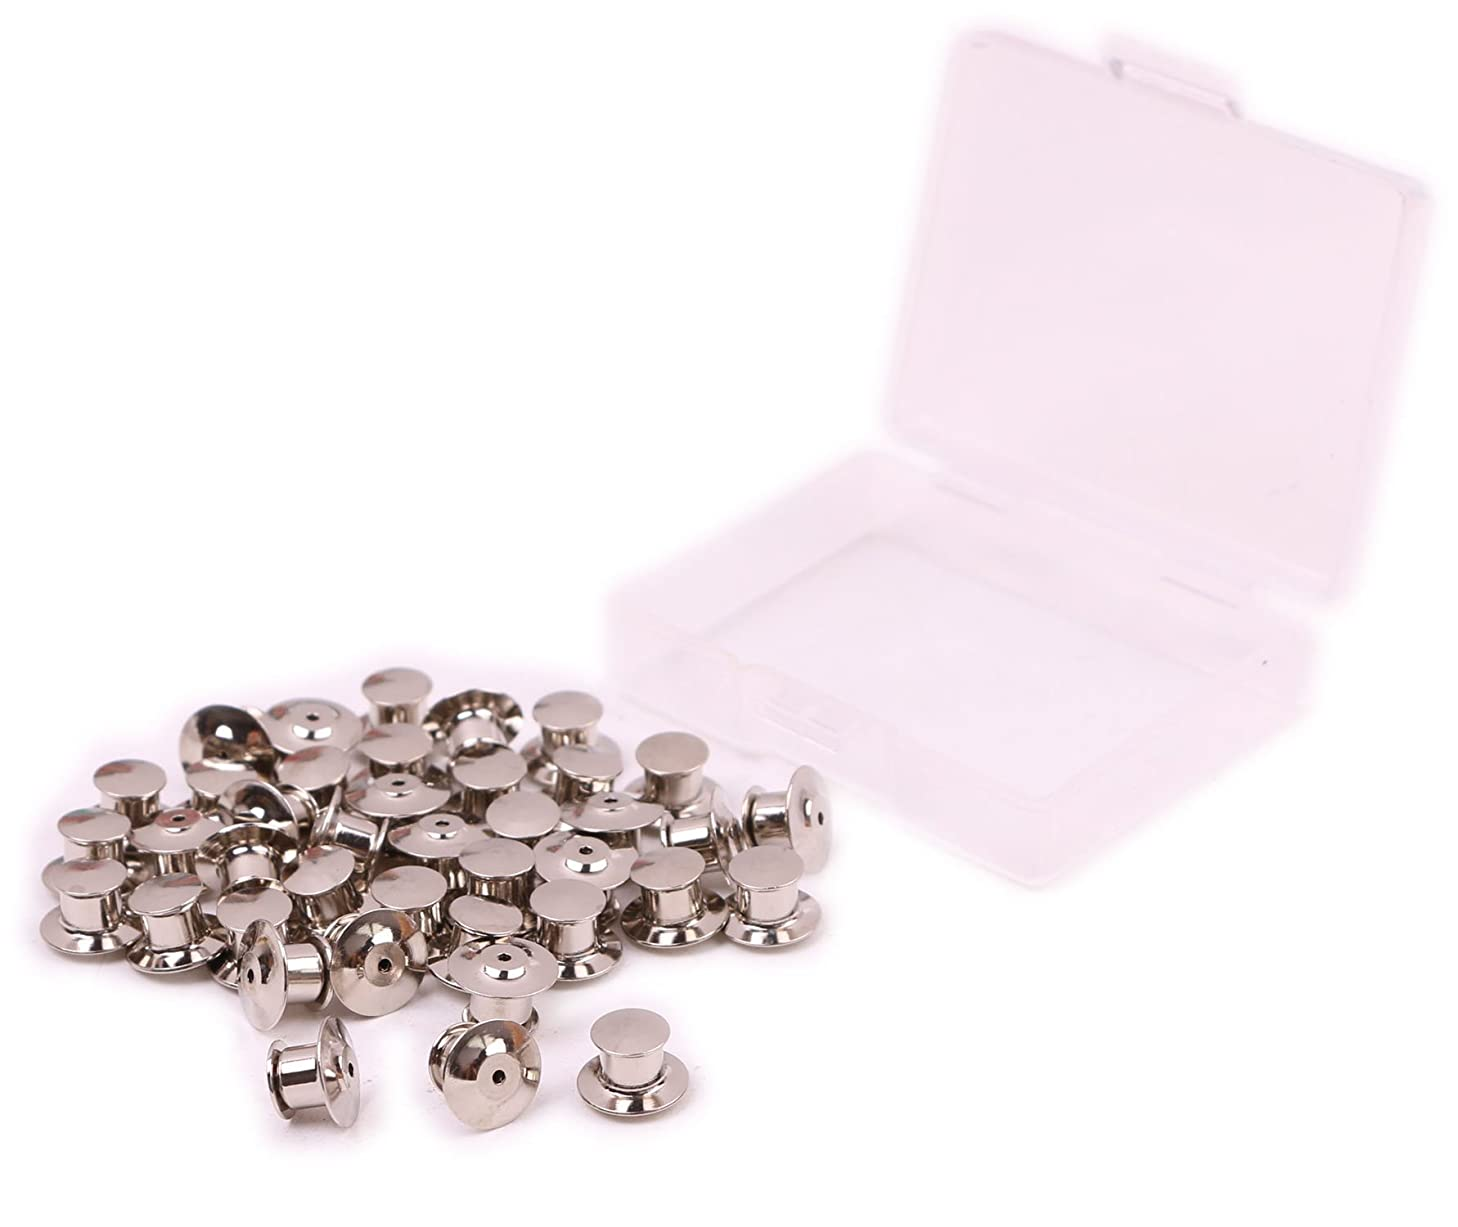 Shapenty Metal Pins Keepers Back Lock Clamps Backer Locking Clasp for Display Books, Lanyards, Bags, Badge, Collectibles, Hats - No Tools Required (Silver, 40PCS)